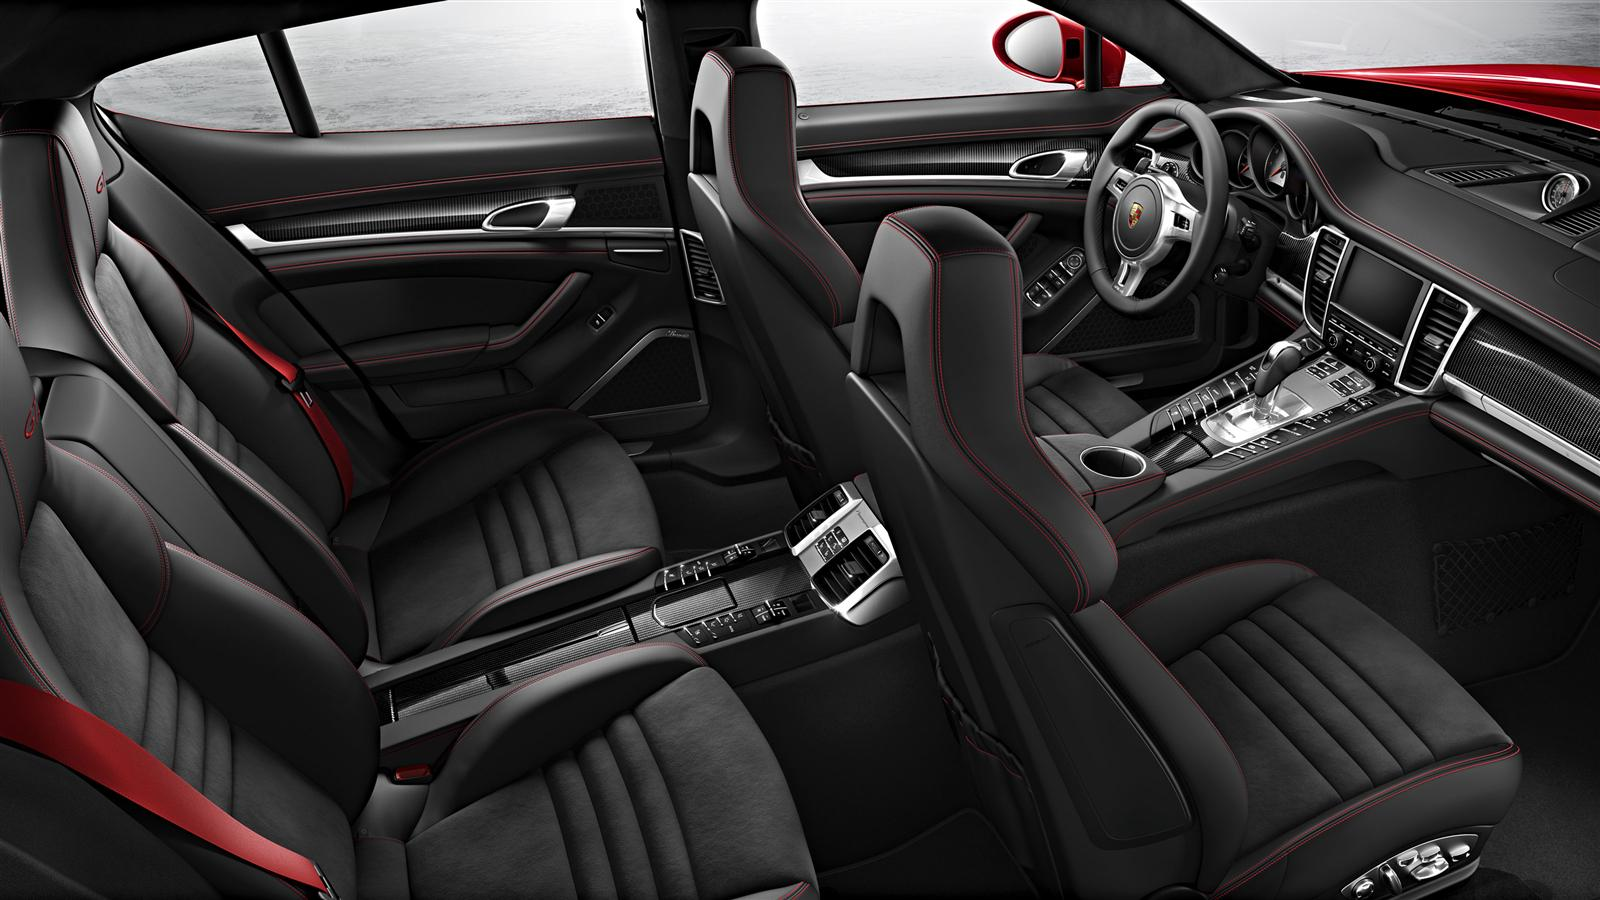 test drive 2014 porsche panamera s e hybrid. Black Bedroom Furniture Sets. Home Design Ideas